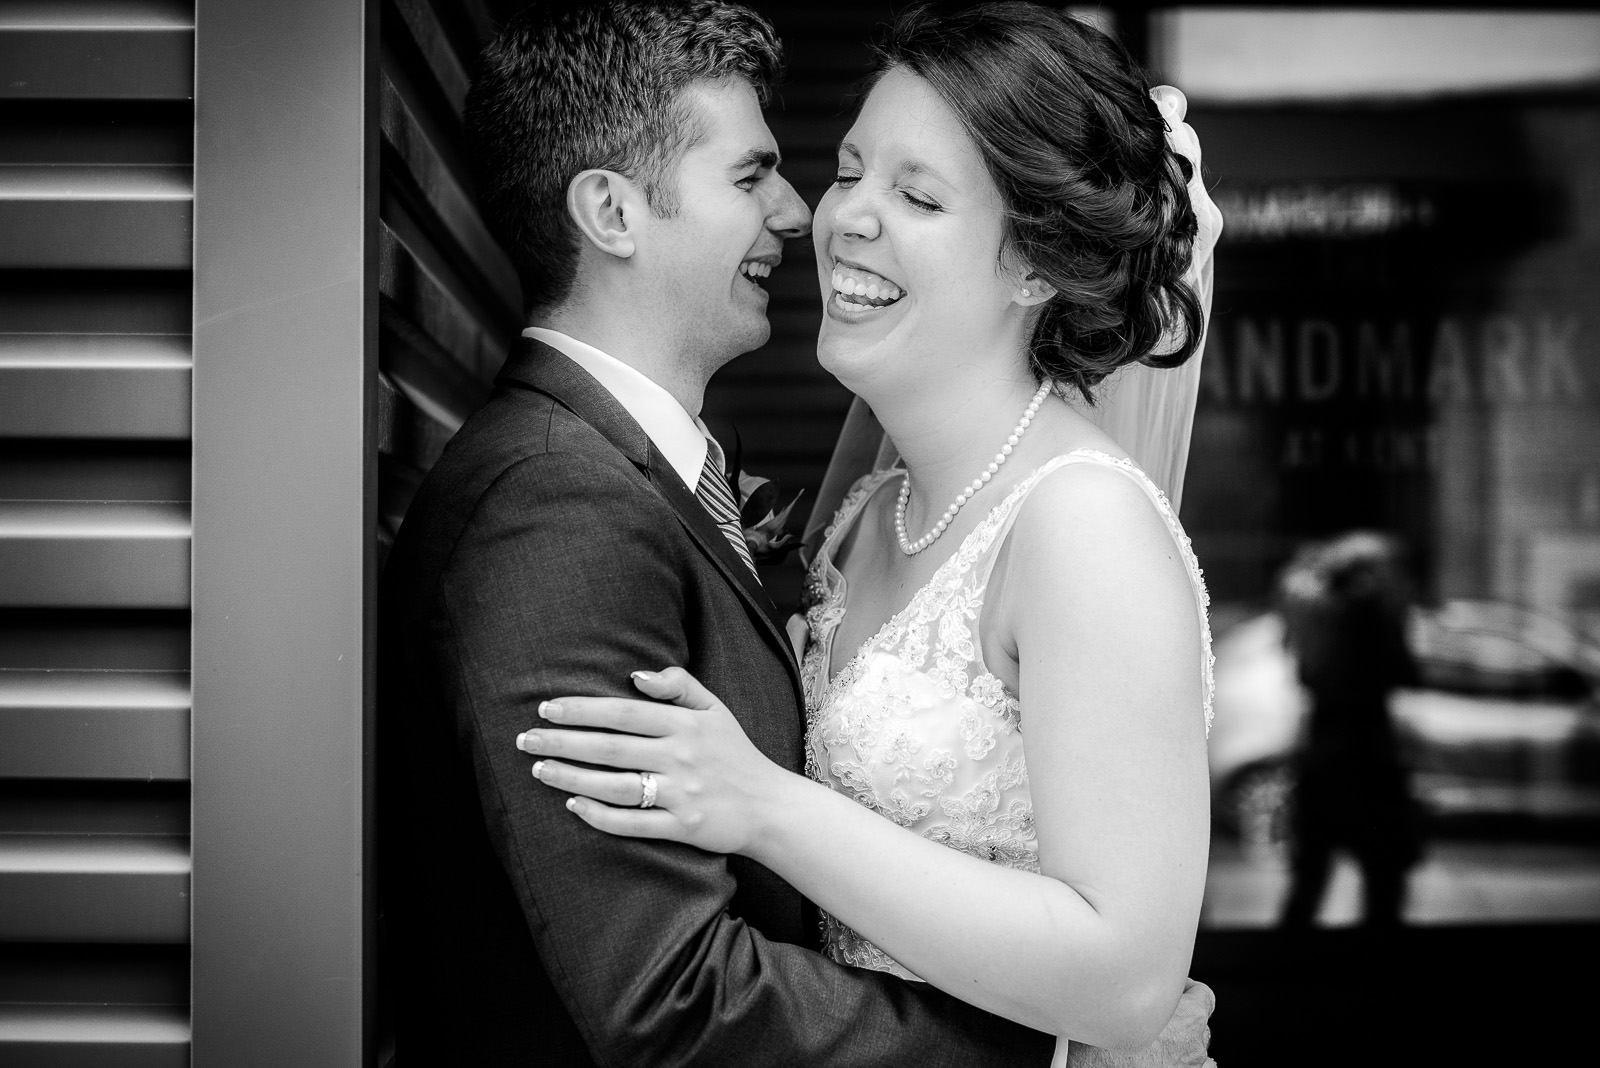 Eric_and_Christy_Photography_Blog_Wedding_Kelly_Michael-38